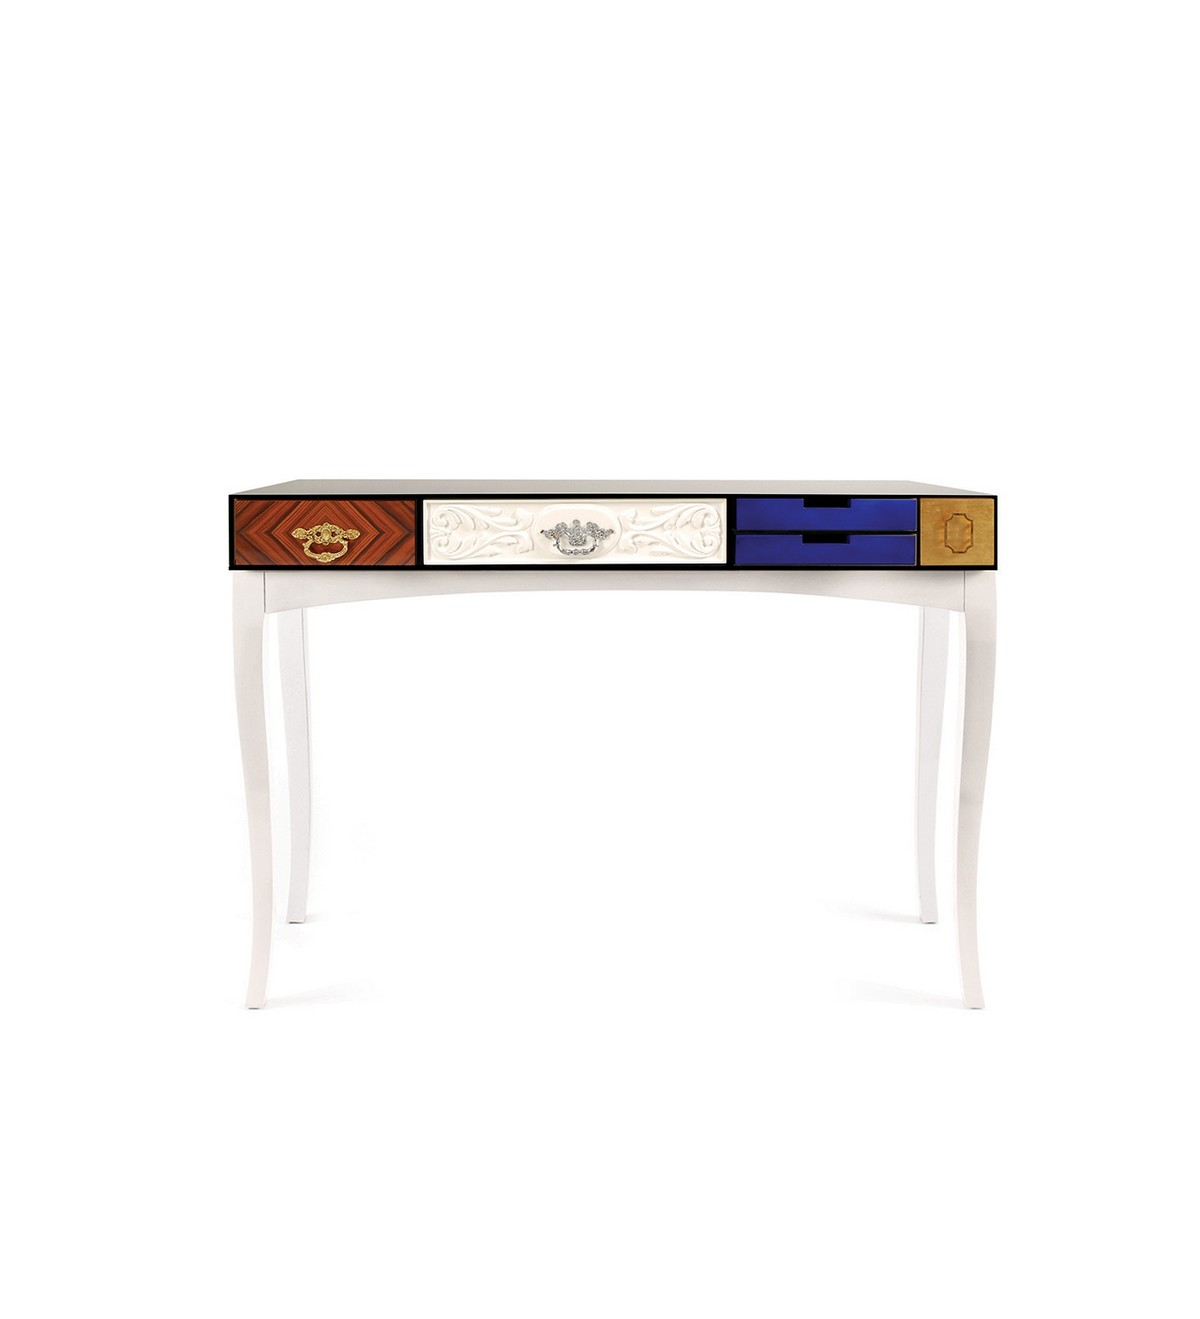 Exclusive Console Tables: When Vintage Meets Contemporary